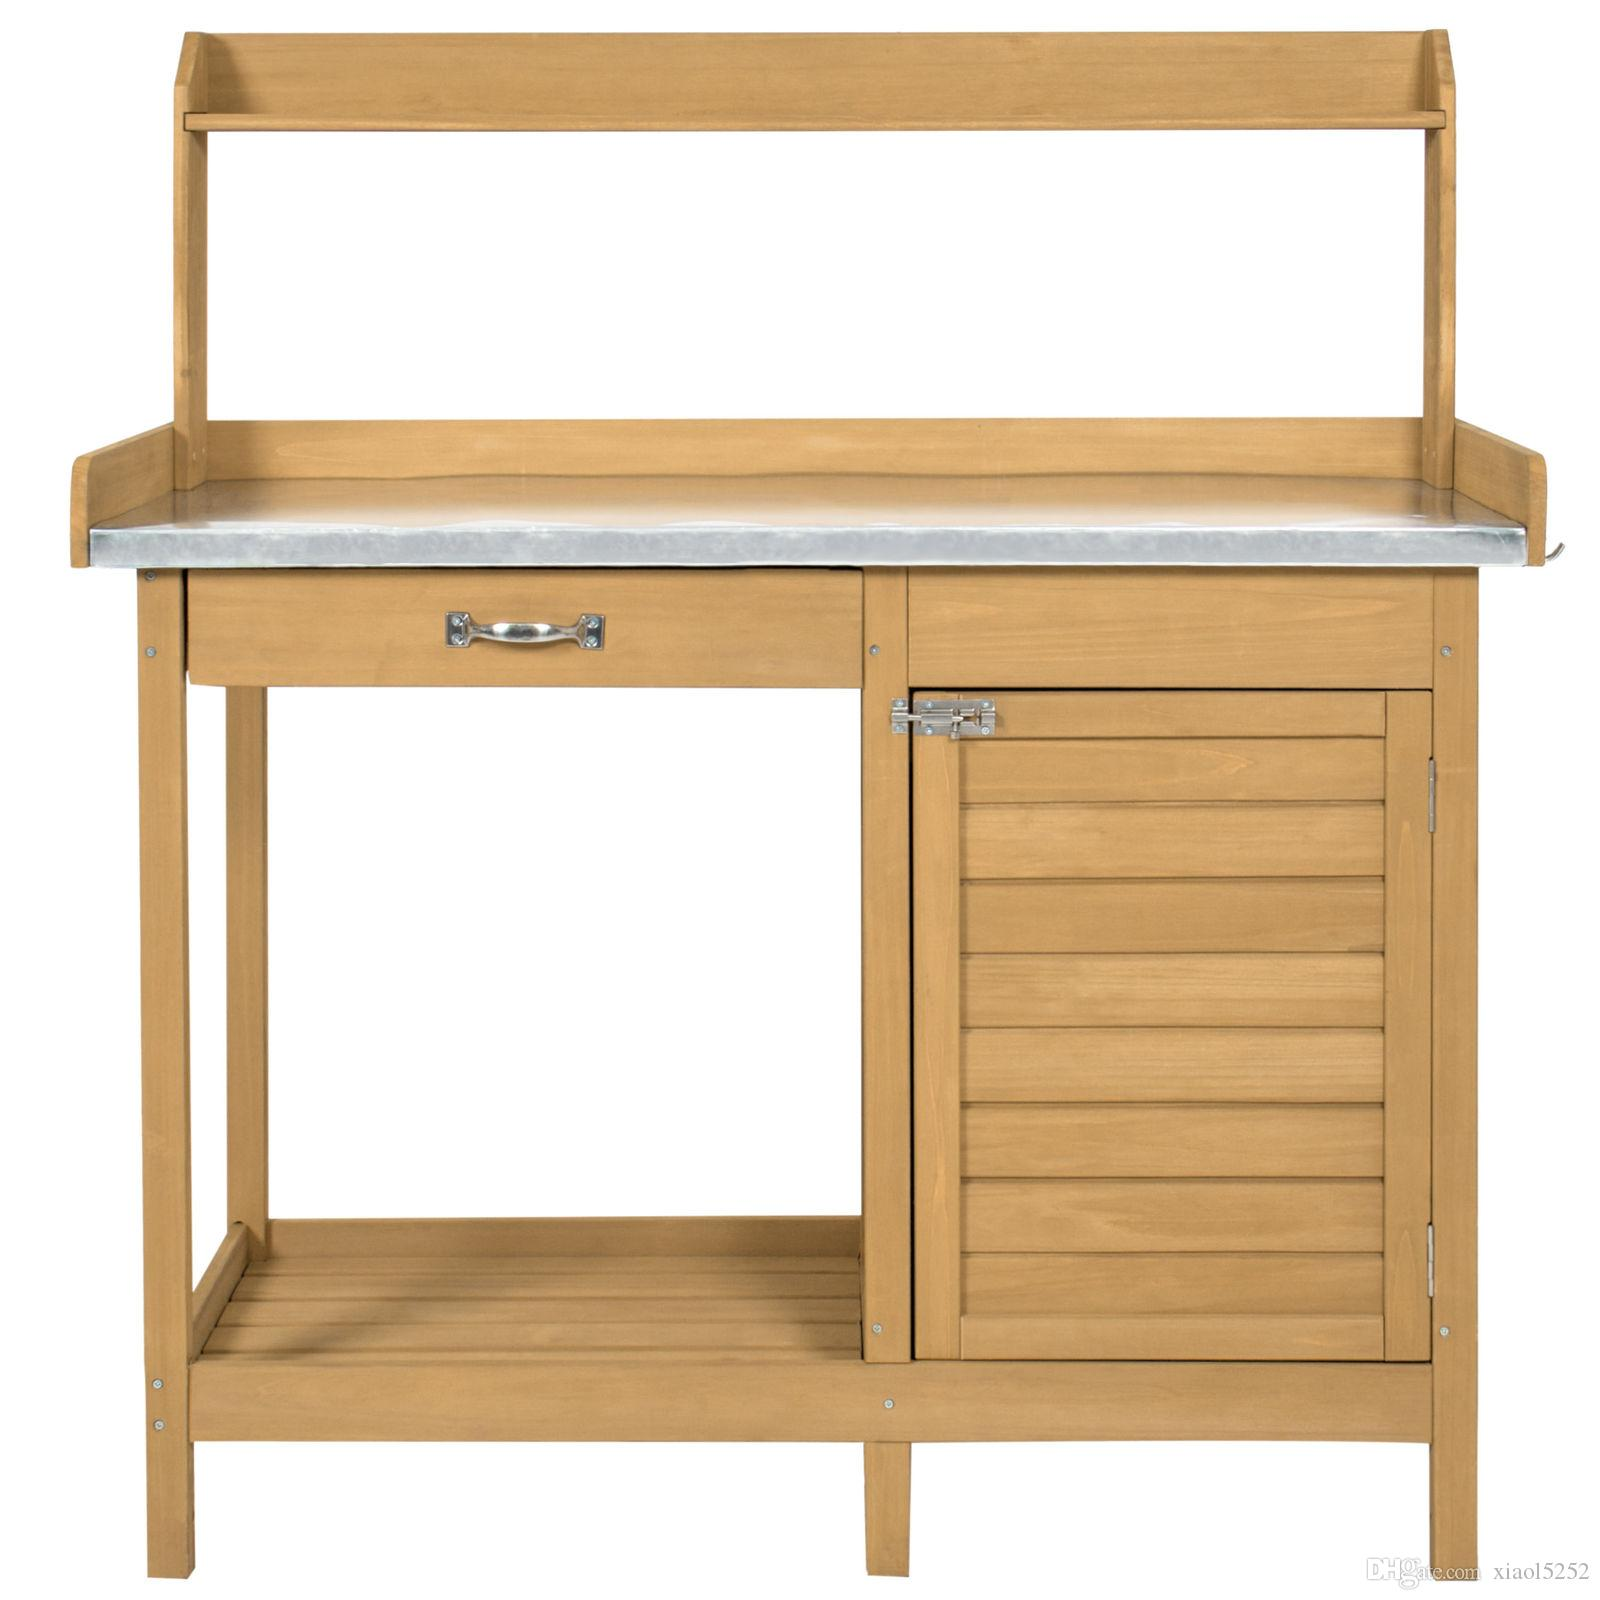 2019 Outdoor Garden Potting Bench Metal Tabletop W/ Cabinet Work Station  From Xiaol5252, $80.41 | DHgate.Com